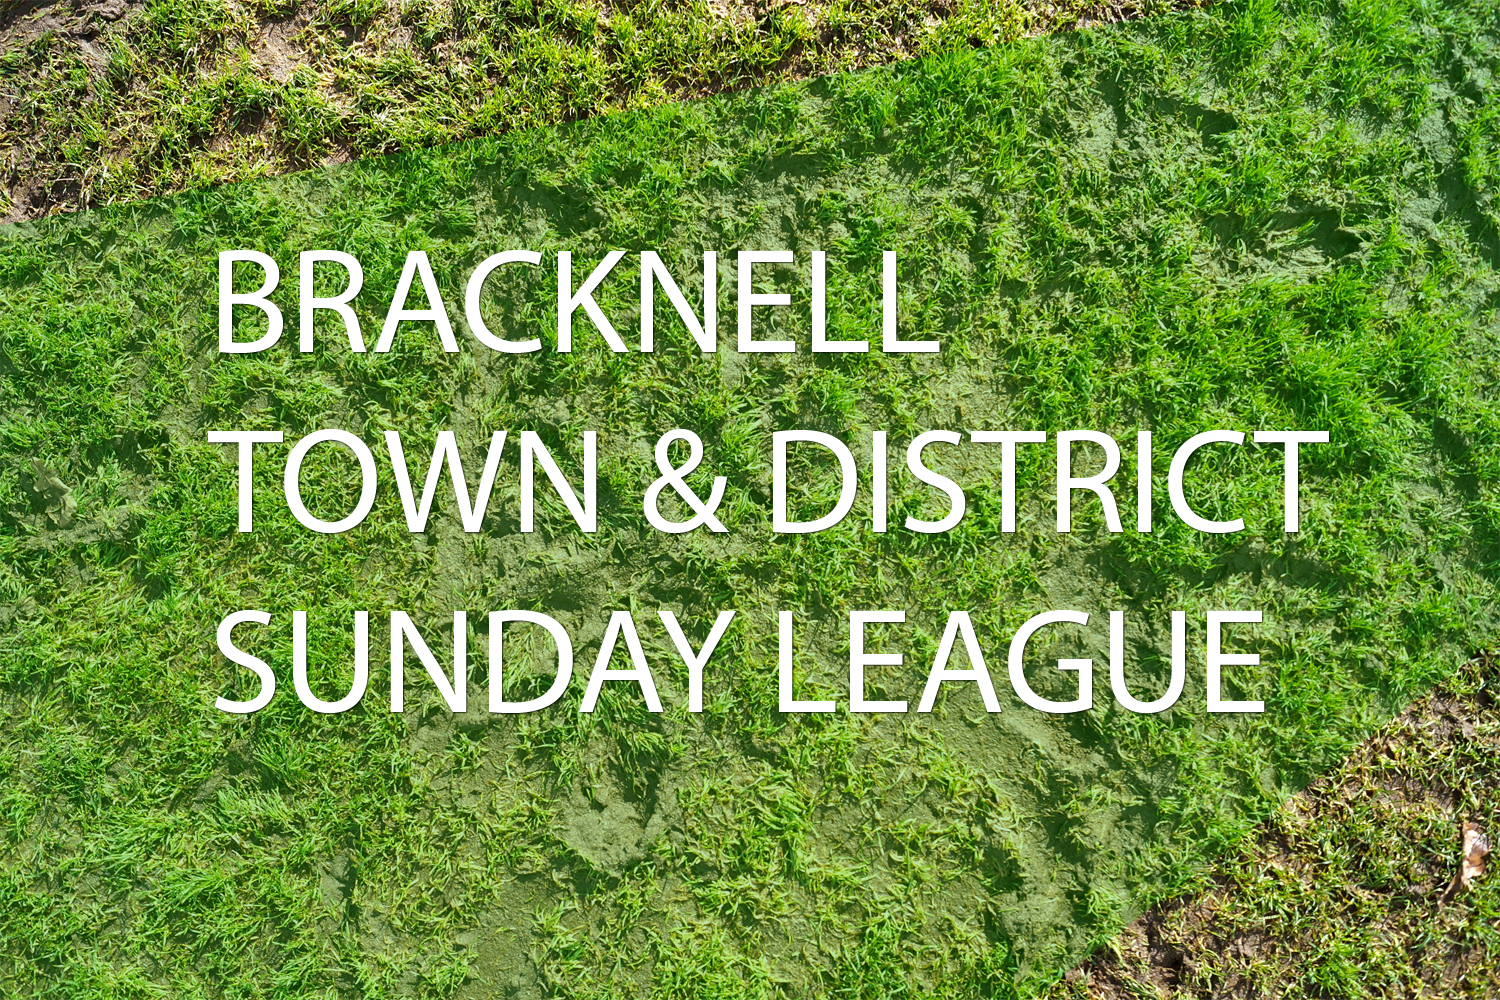 Sunday League cup finalists and Fernhill are Champions again